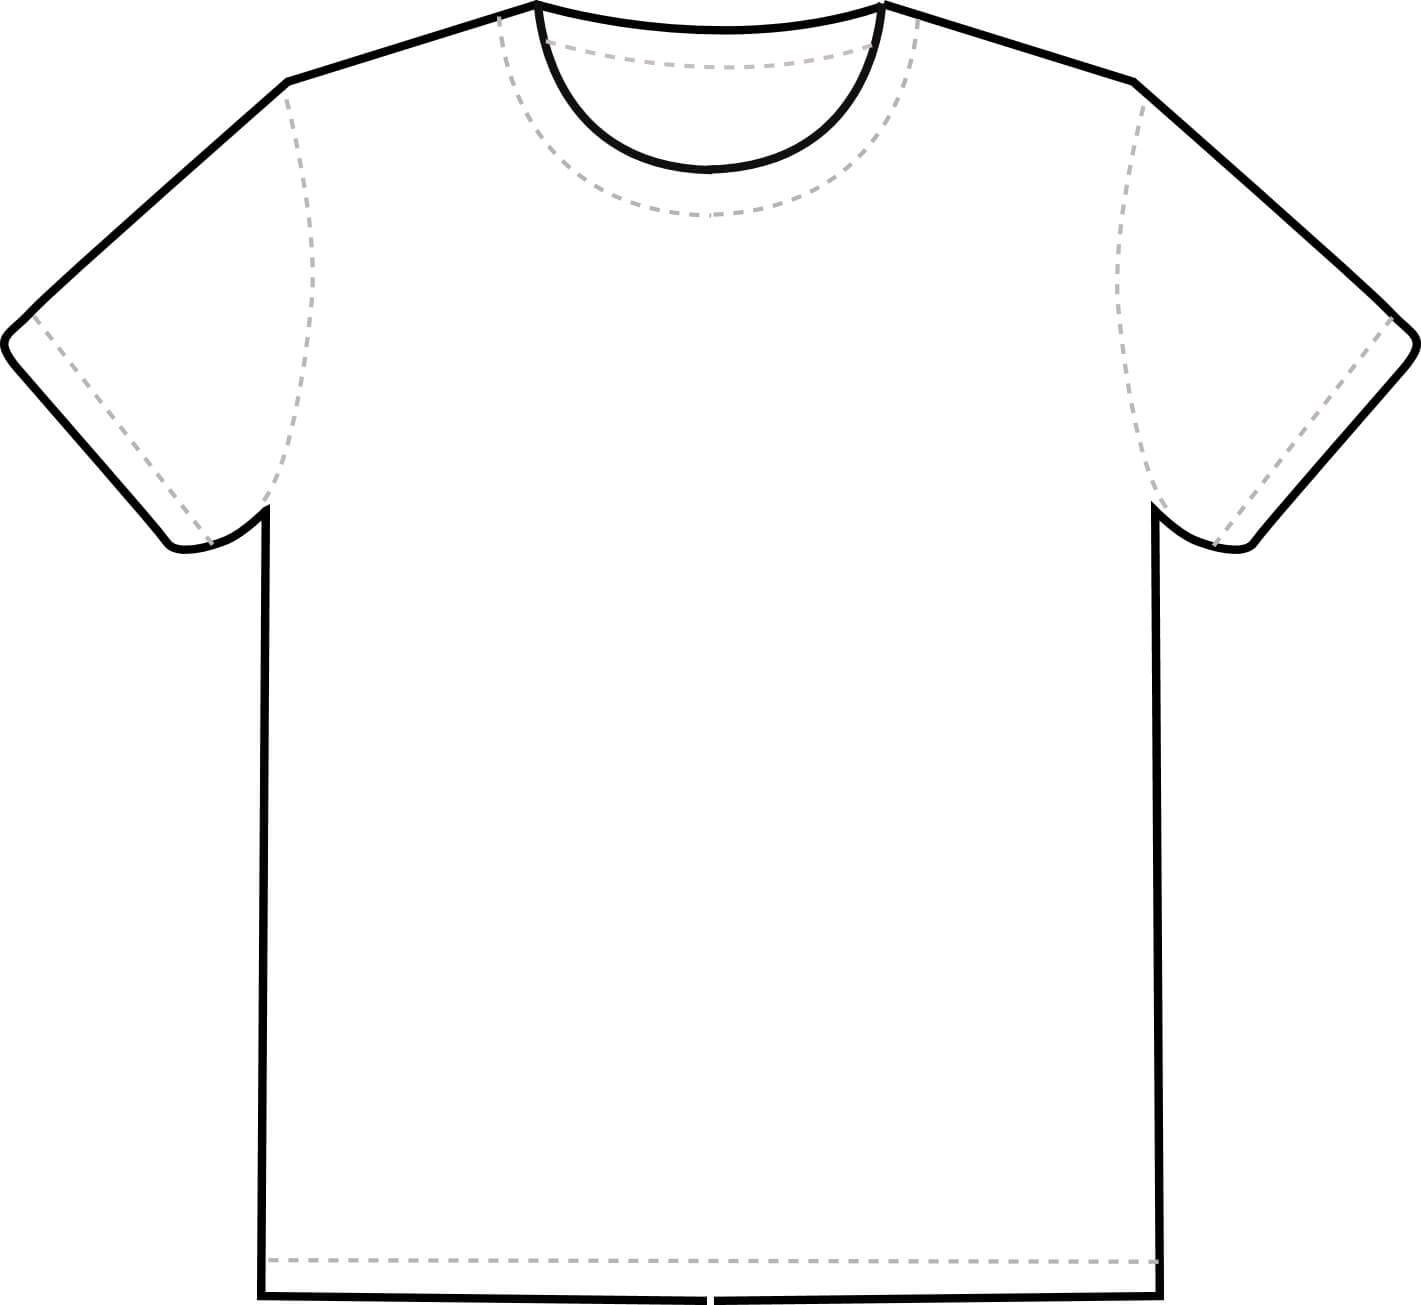 Free Blank T Shirt Outline, Download Free Clip Art, Free Intended For Blank T Shirt Outline Template